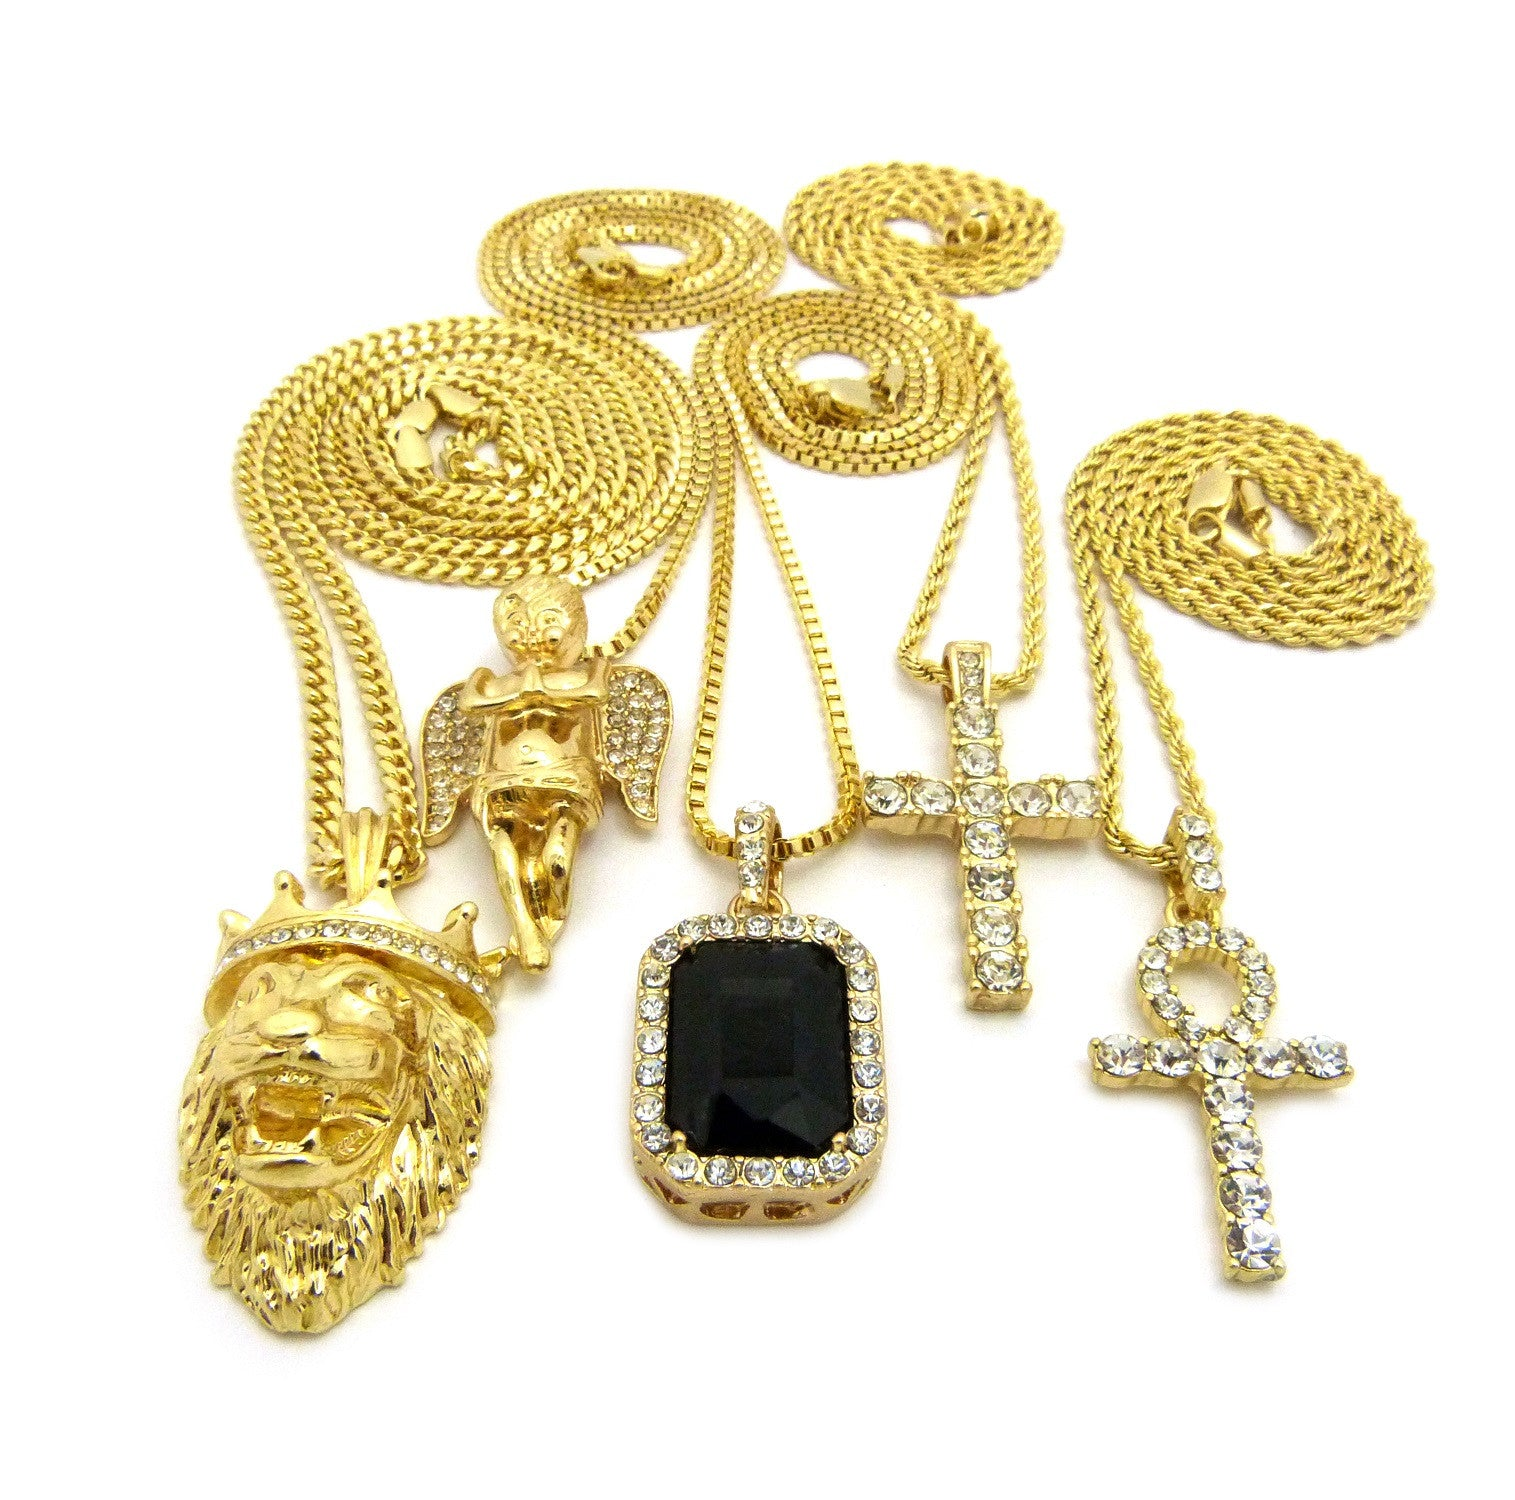 14k Gold Plated 5 Chain Combo Icey Black Gem ICed Out Ankh King Leo Iced Out Cross Praying Angel